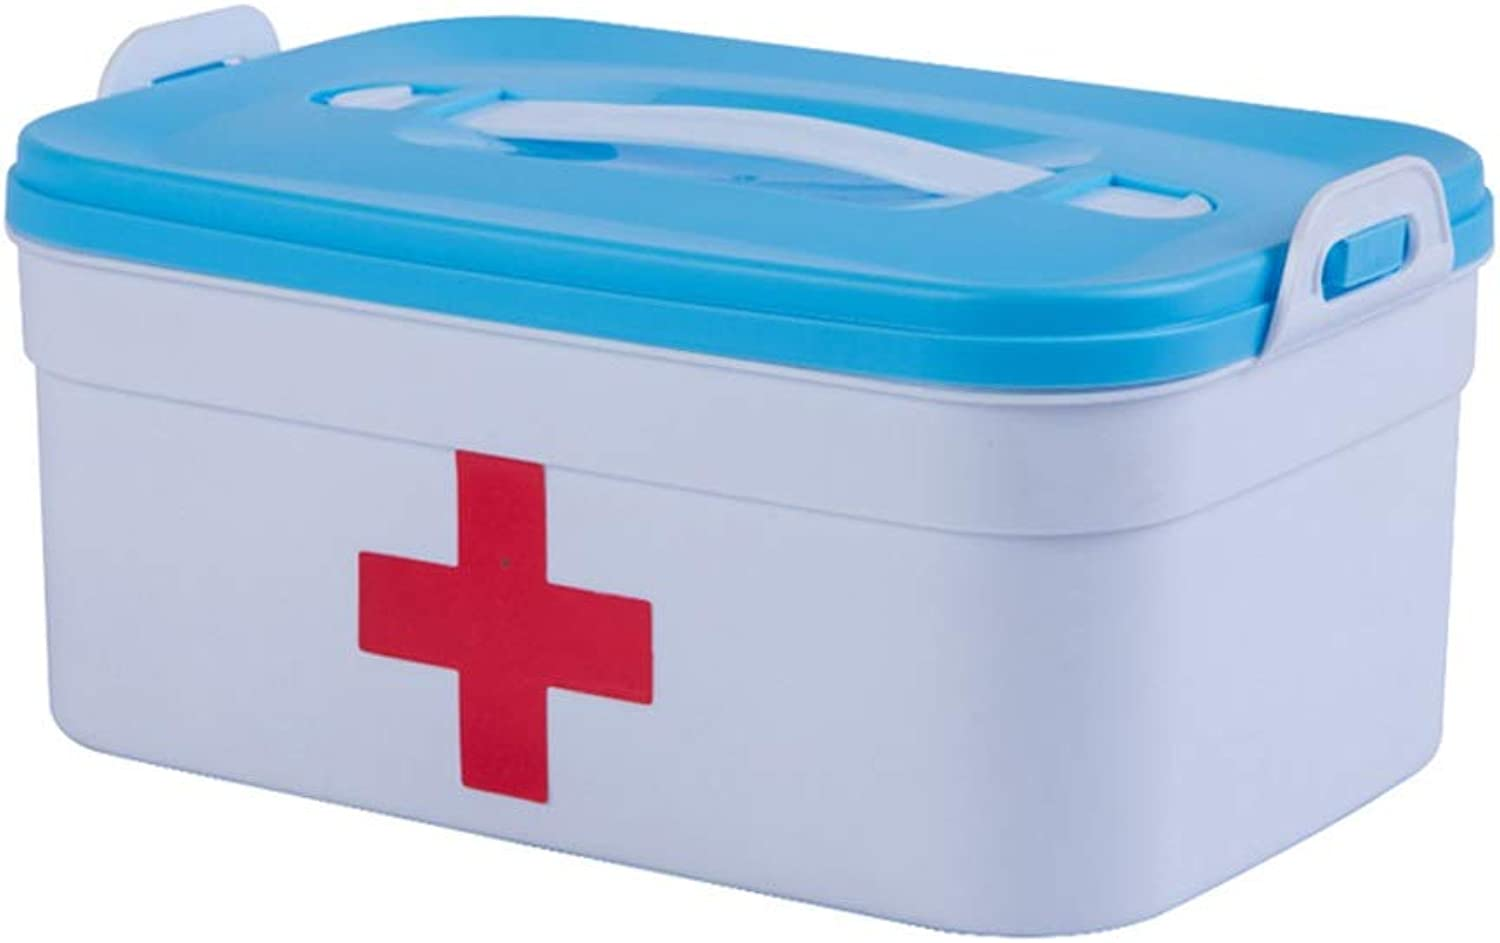 LCSHAN Simple Medicine Box Home Double Layer Medical Storage Box Plastic Multi-Function (color   bluee)